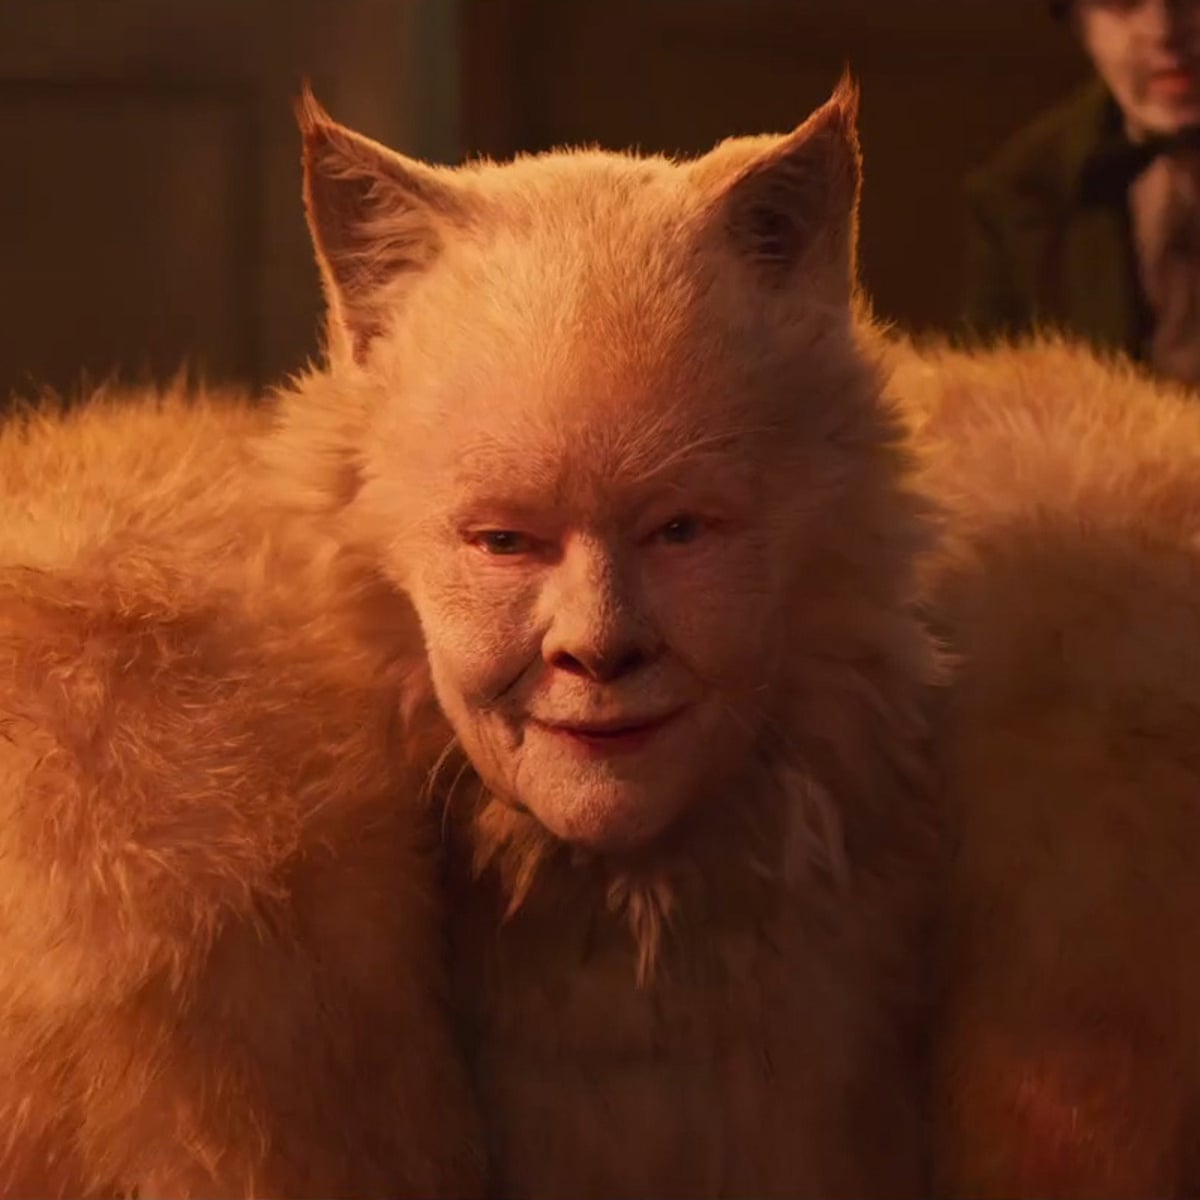 Cats Movie Trailer Internet Reacts In Horror To Demented Dream Ballet Film The Guardian